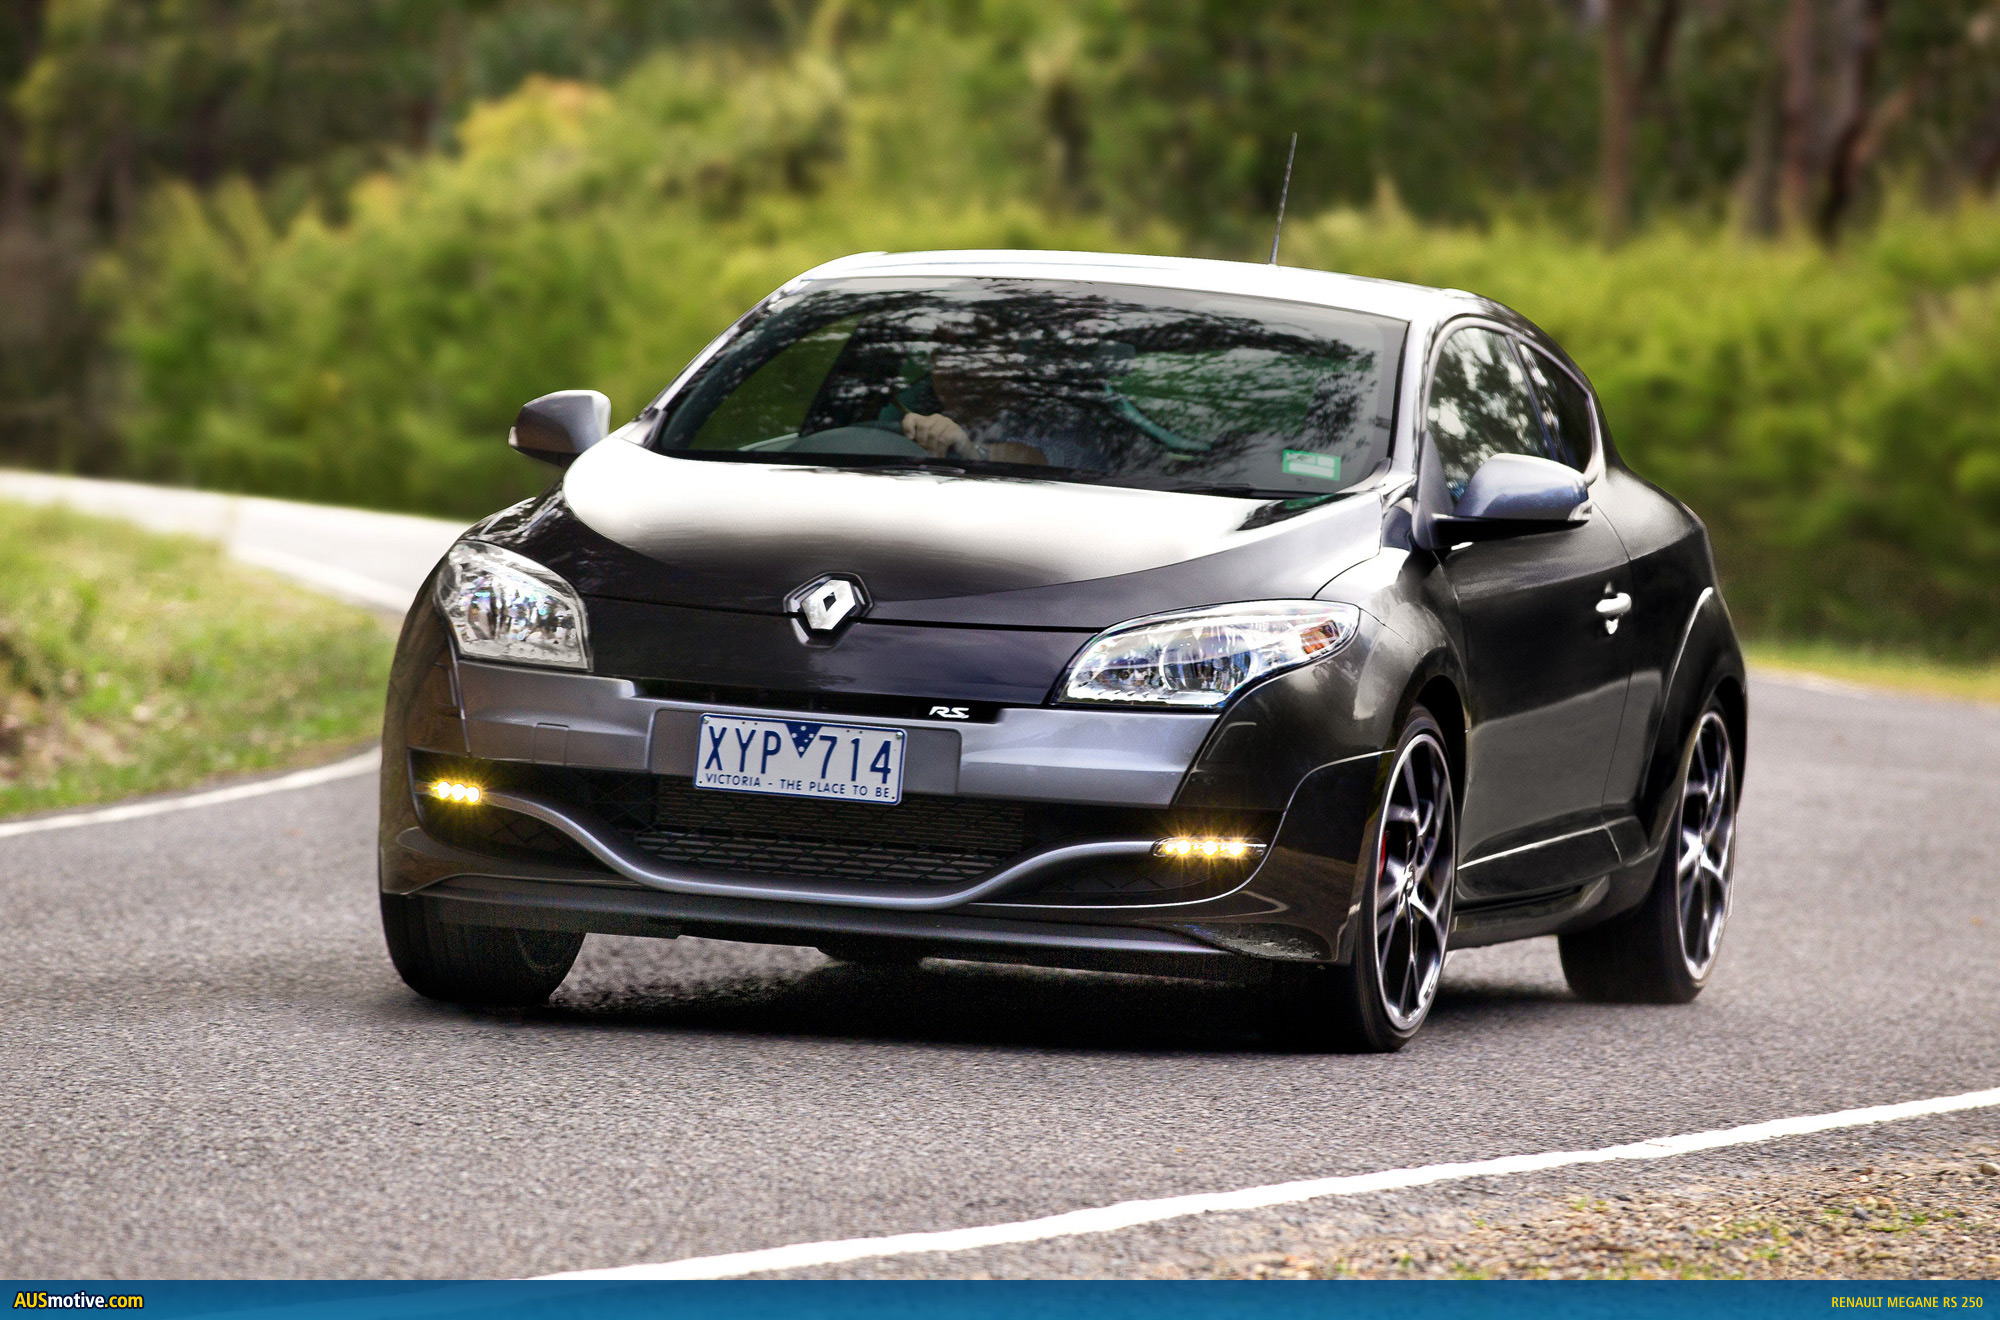 Renault Megane RS 250 Australian pricing & specs Wallpaper Backgrounds